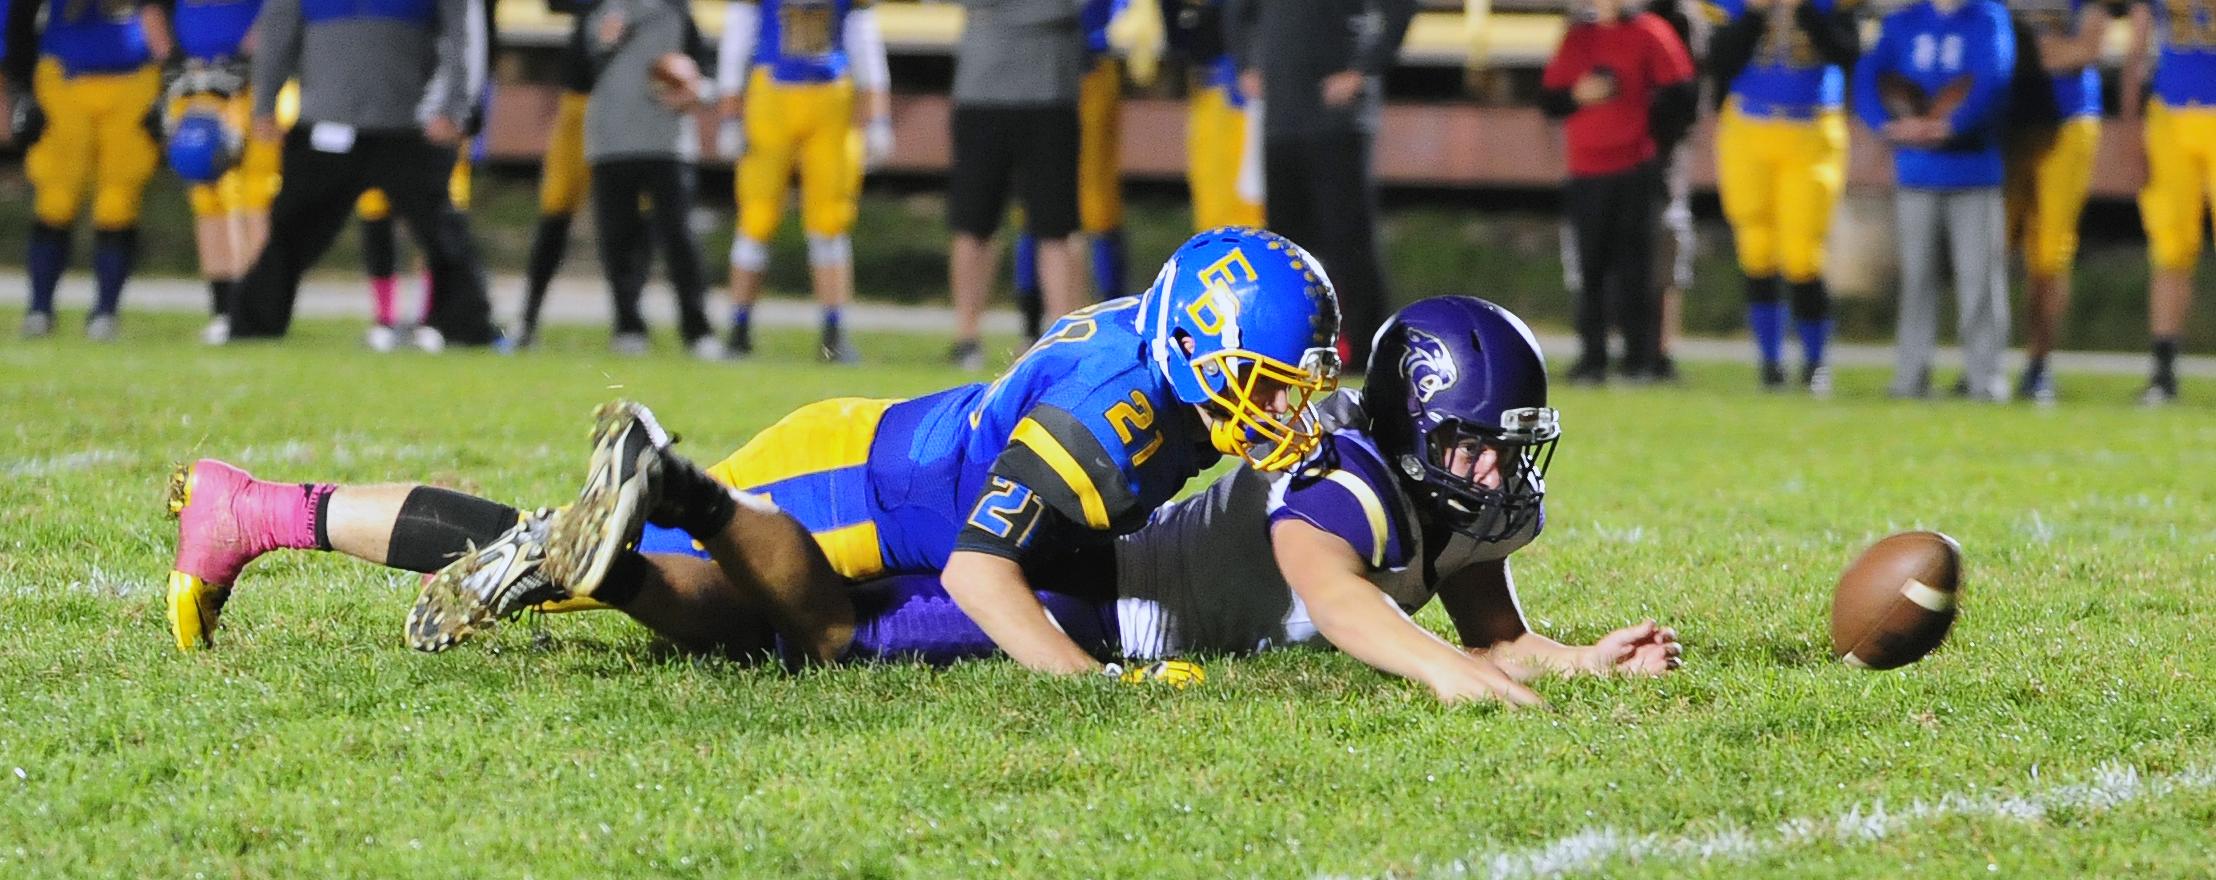 NICK INGRAM/Citizen photo North Platte's Austin Snook, bottom, watches the ball roll away from him during a Class 1 District 7 game Friday, Oct. 21 against East Buchanan in Gower, Mo.